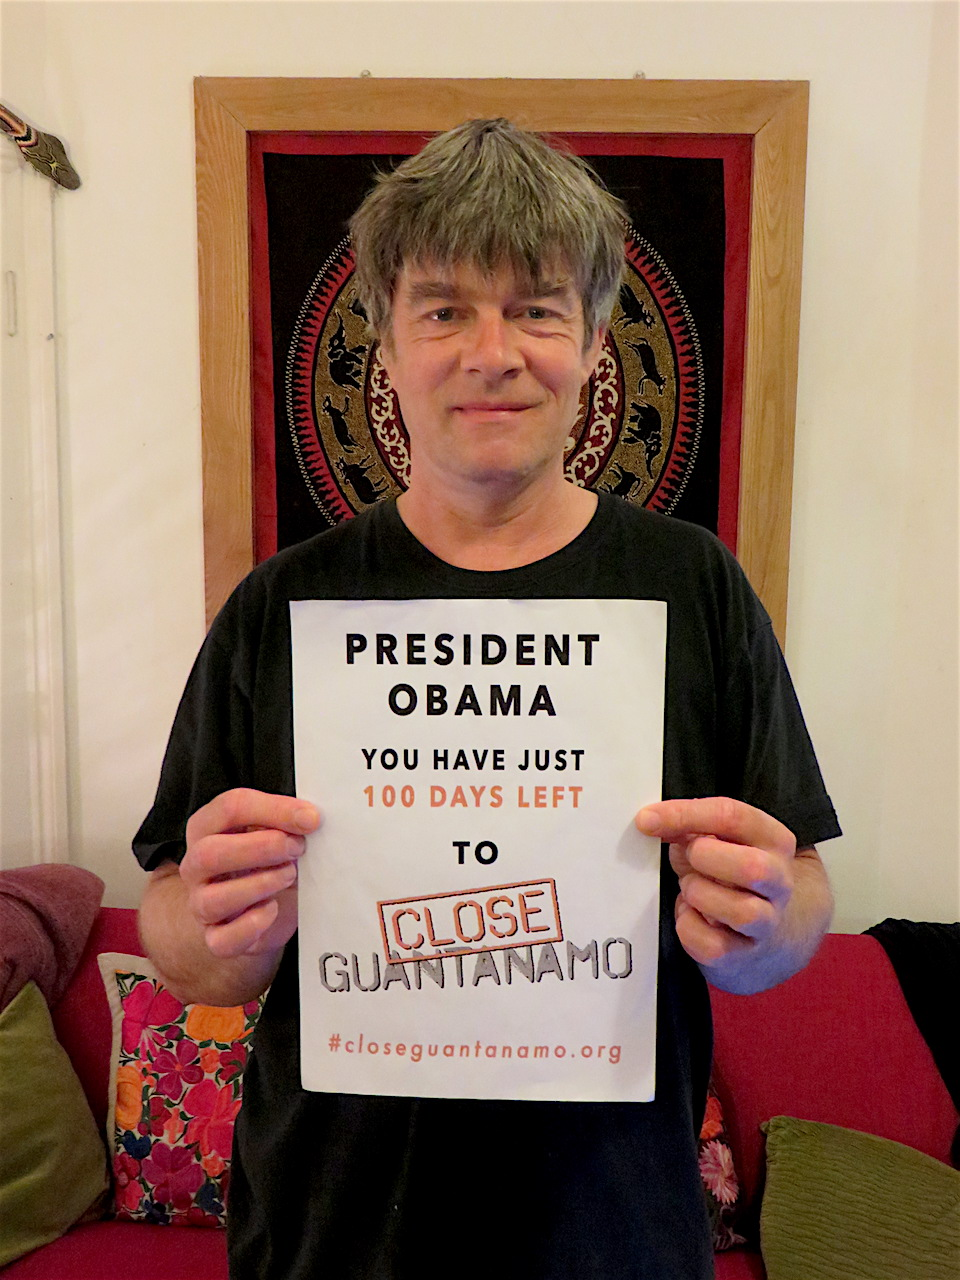 Andy Worthington supporting the Countdown to Close Guantanamo on October 11, 2016, when President Obama had just 100 days left to close Guantanamo before he leaves office.